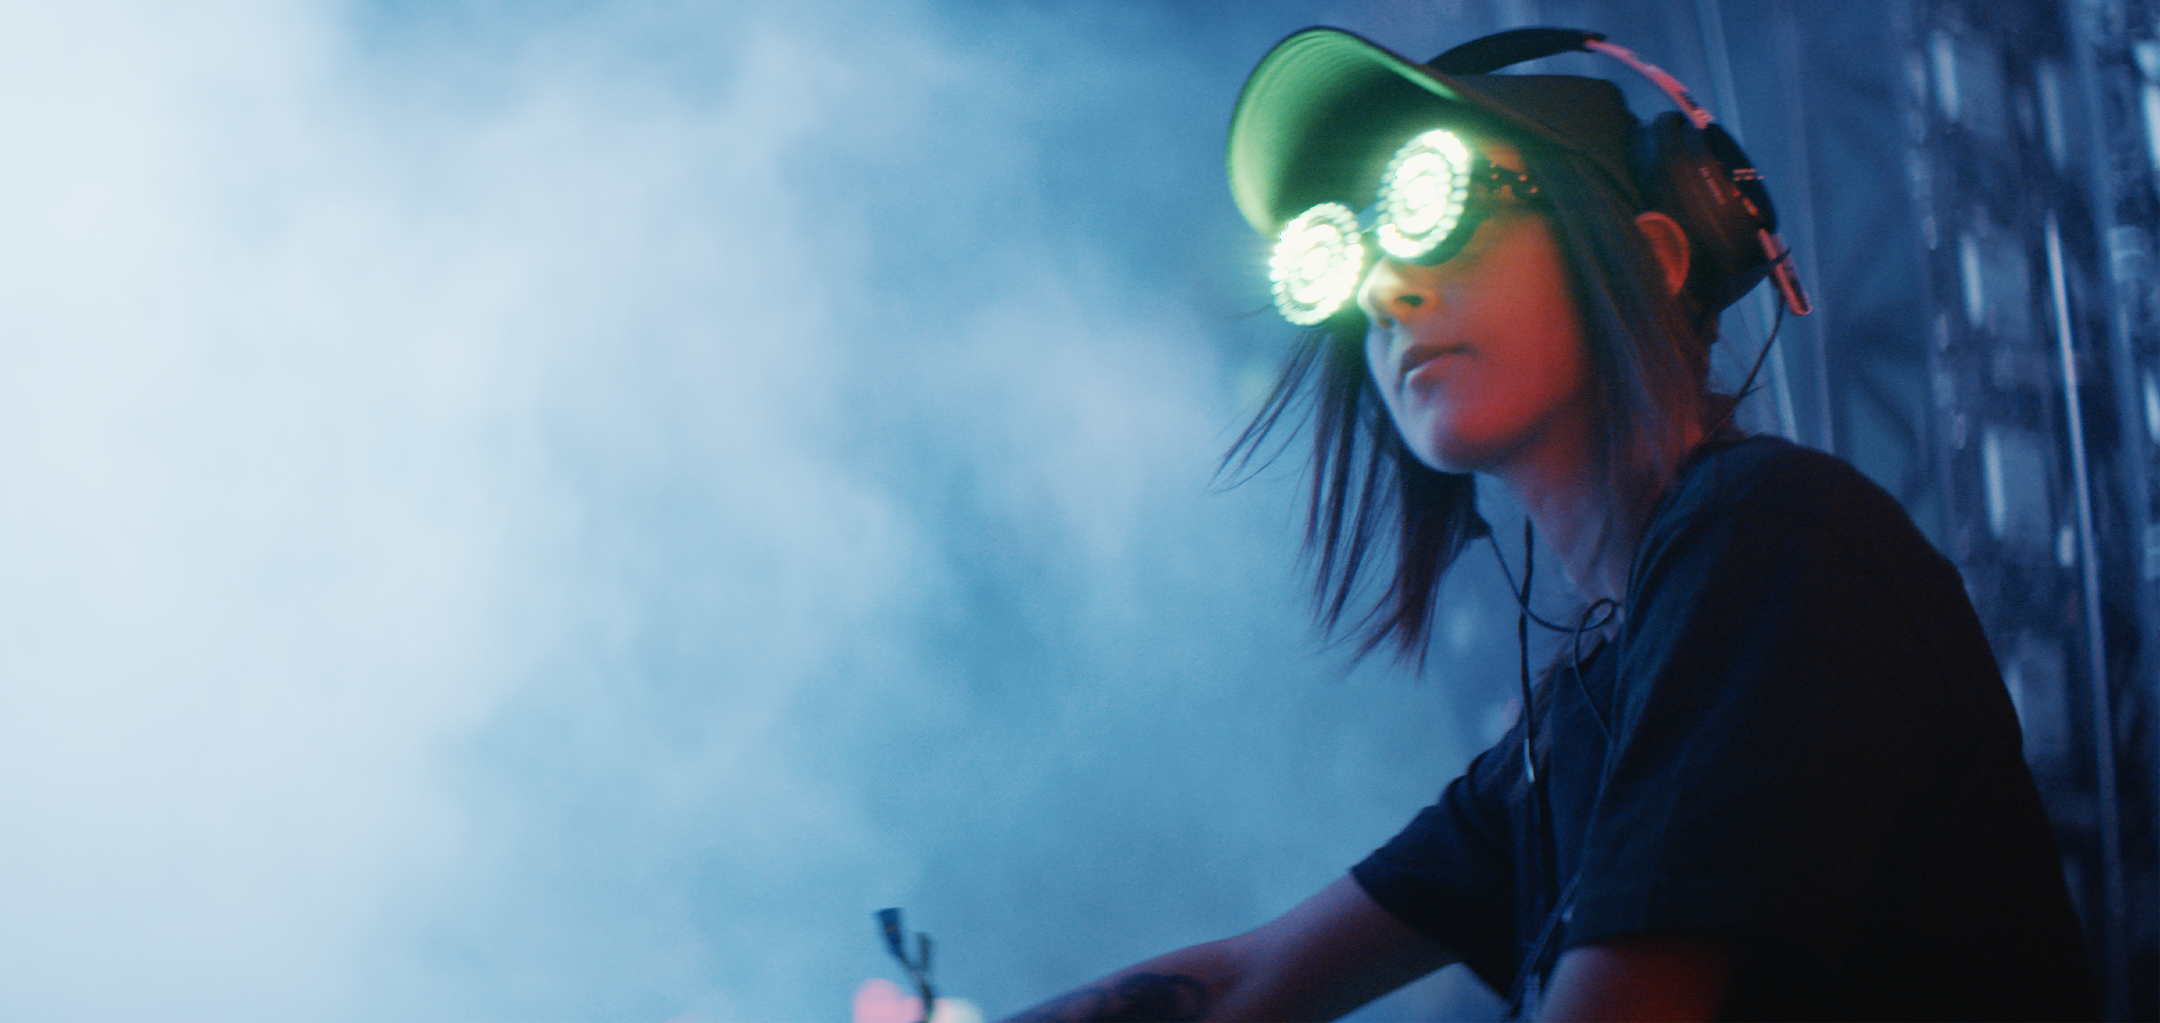 DJ Rezz in Underplayed (2020)